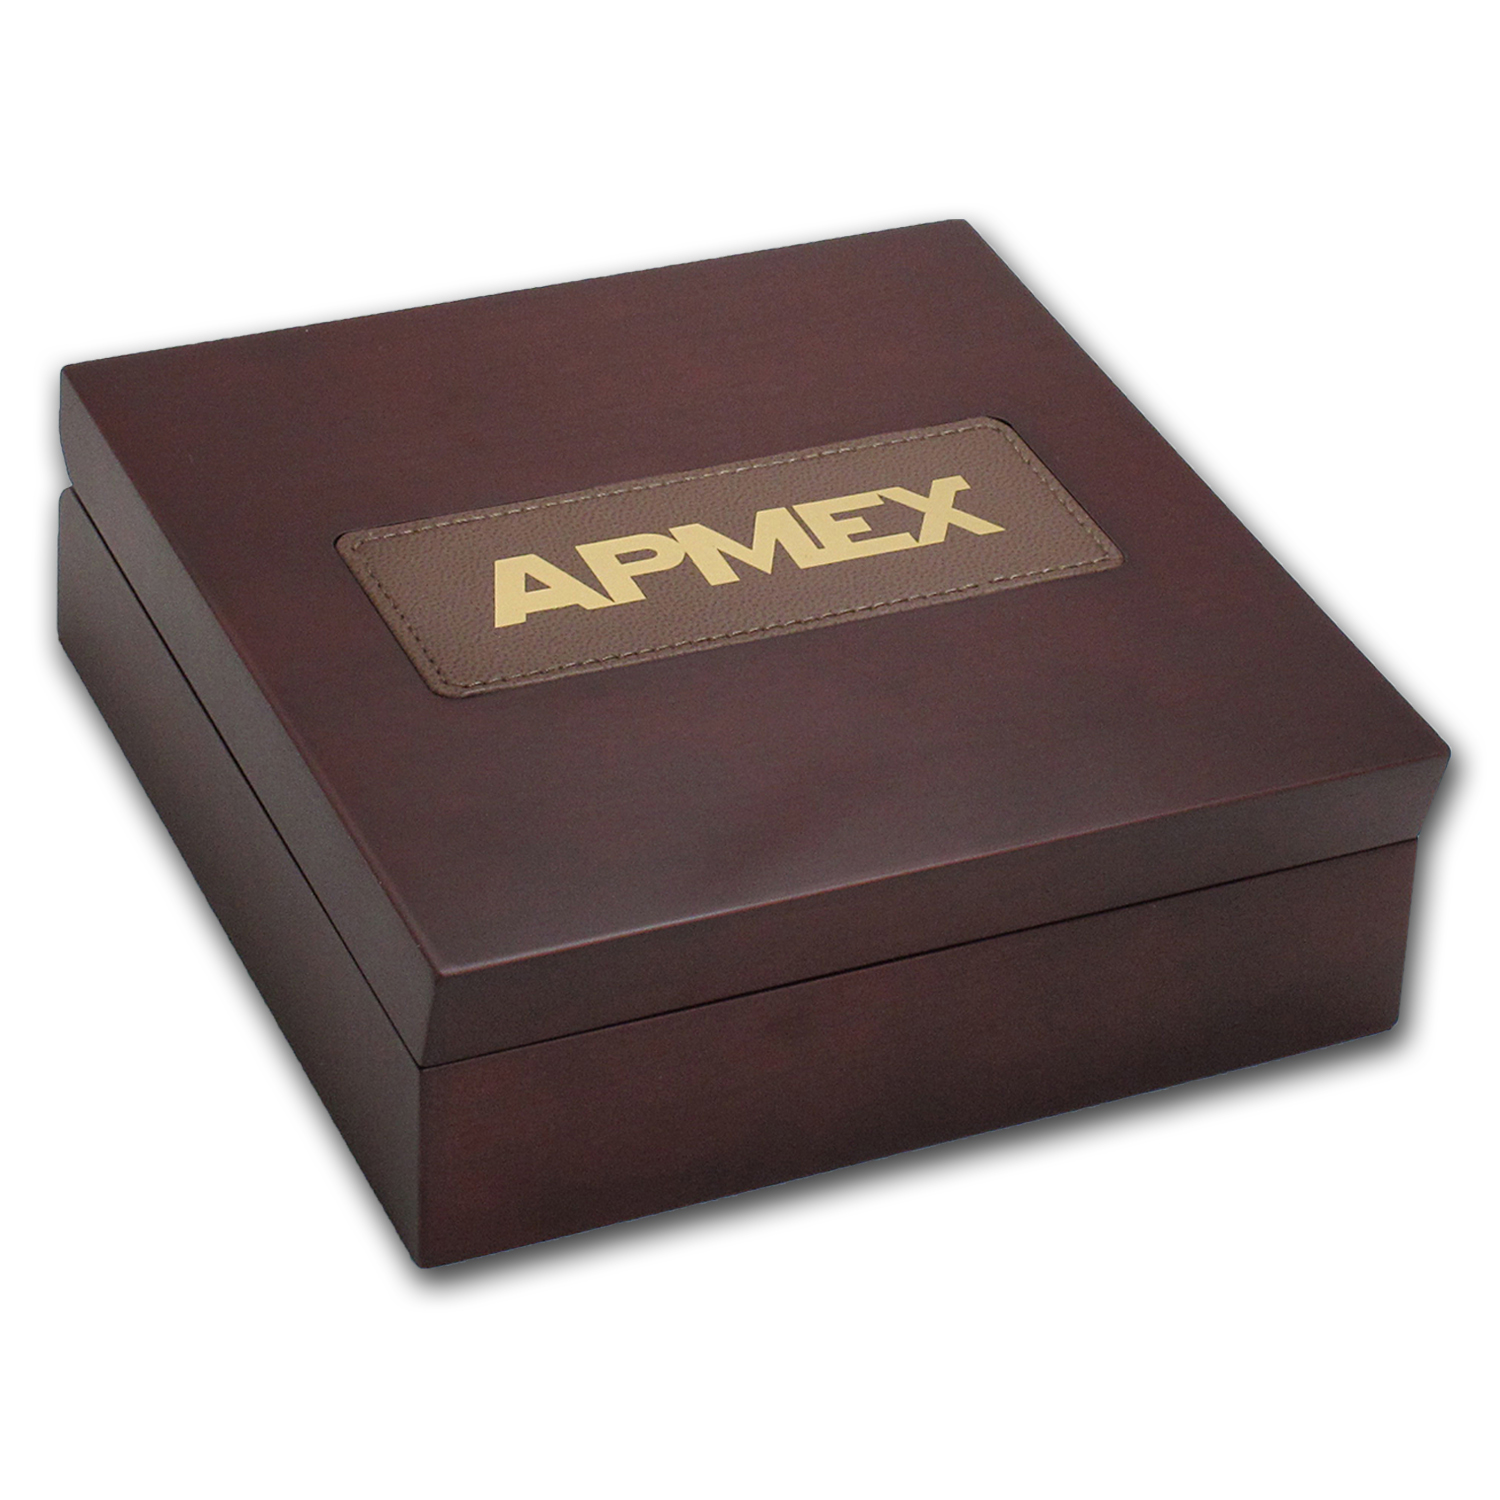 APMEX Wood Gift Box - 250 gram PAMP Suisse Silver Bar (w/Assay)